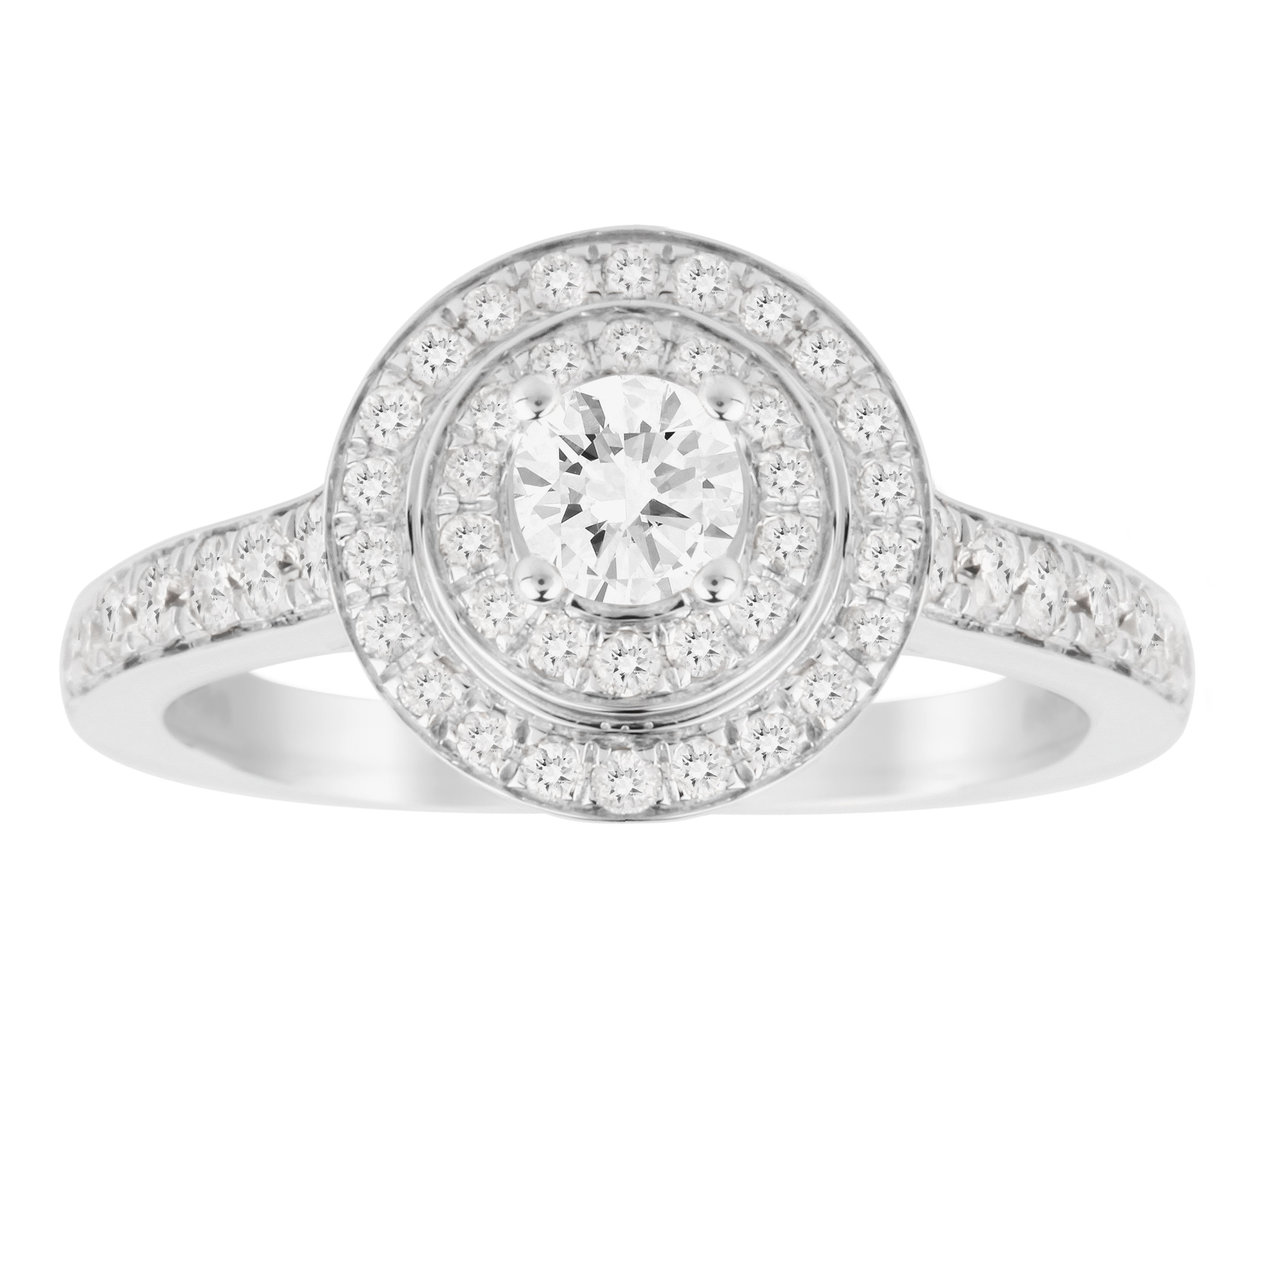 Jenny Packham Brilliant Cut 0.70 Carat Total Weight Double Halo Diamond Ring in 18 Carat White Gold